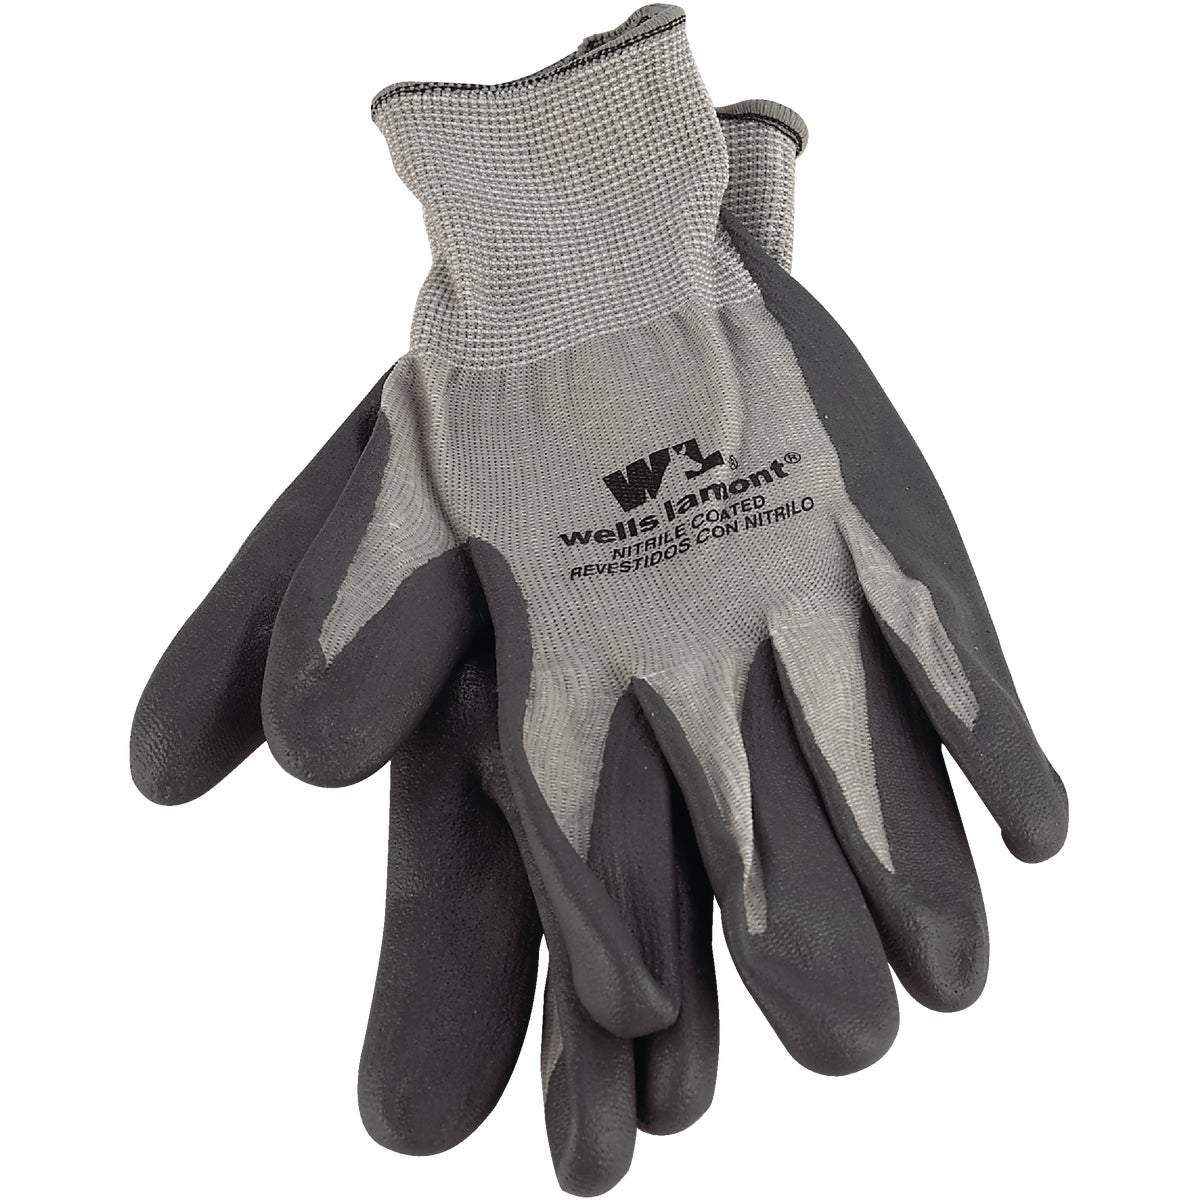 LRG NITRILE KNIT GLOVE - 546L by Wells Lamont